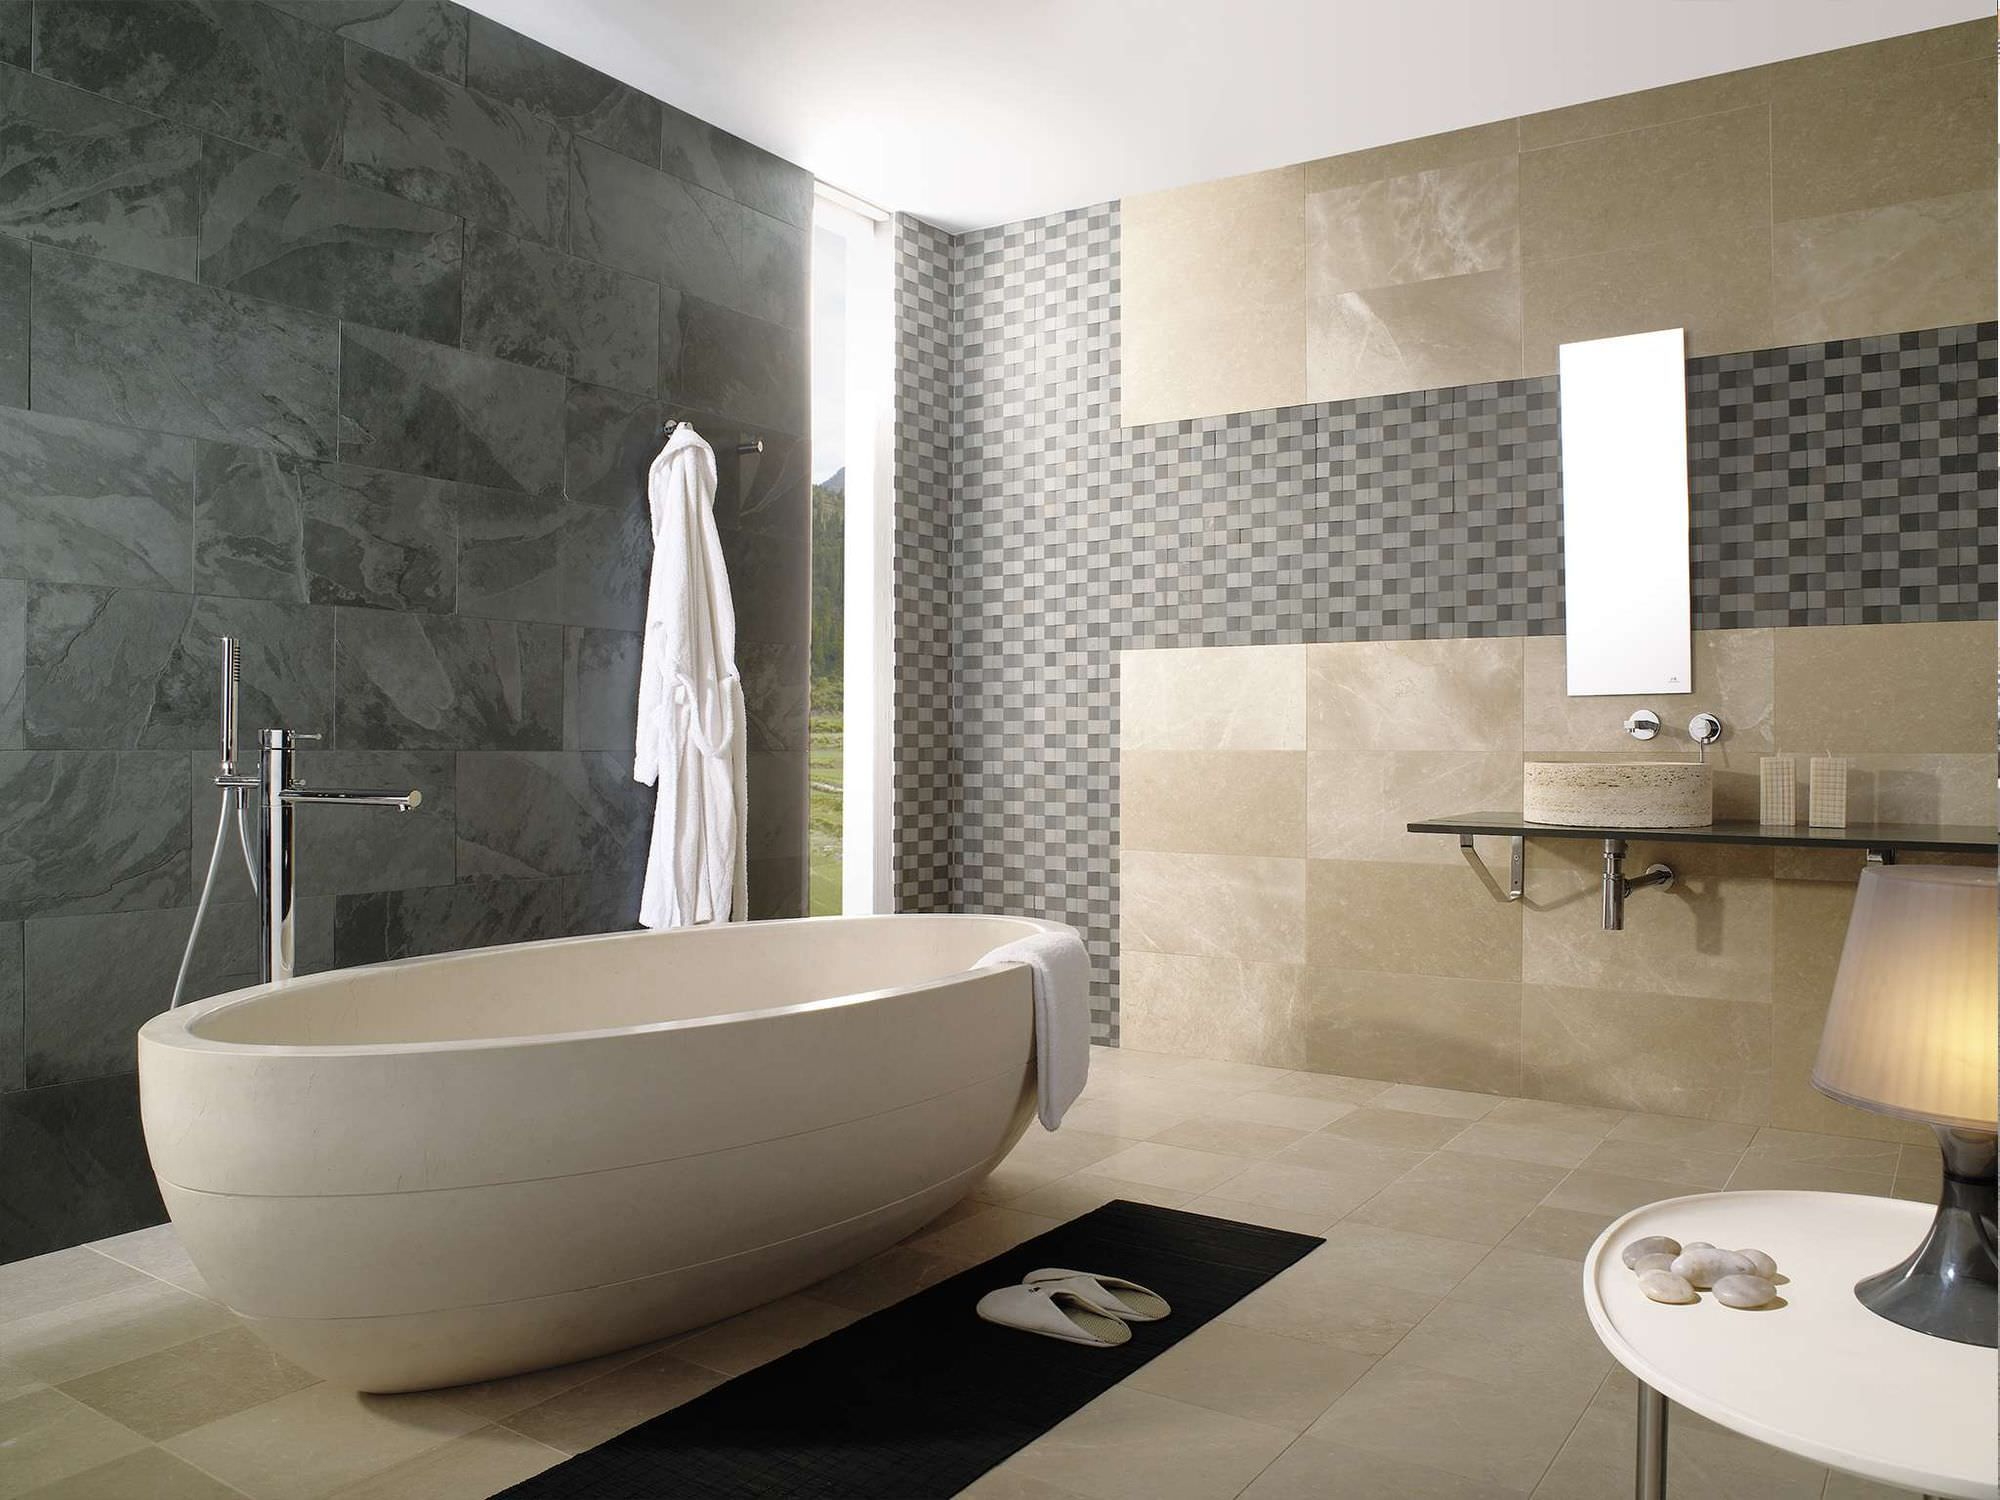 Beige Tiled Bathrooms Minimalist chrome bathtub | oval stone bathtub design ideas with modern